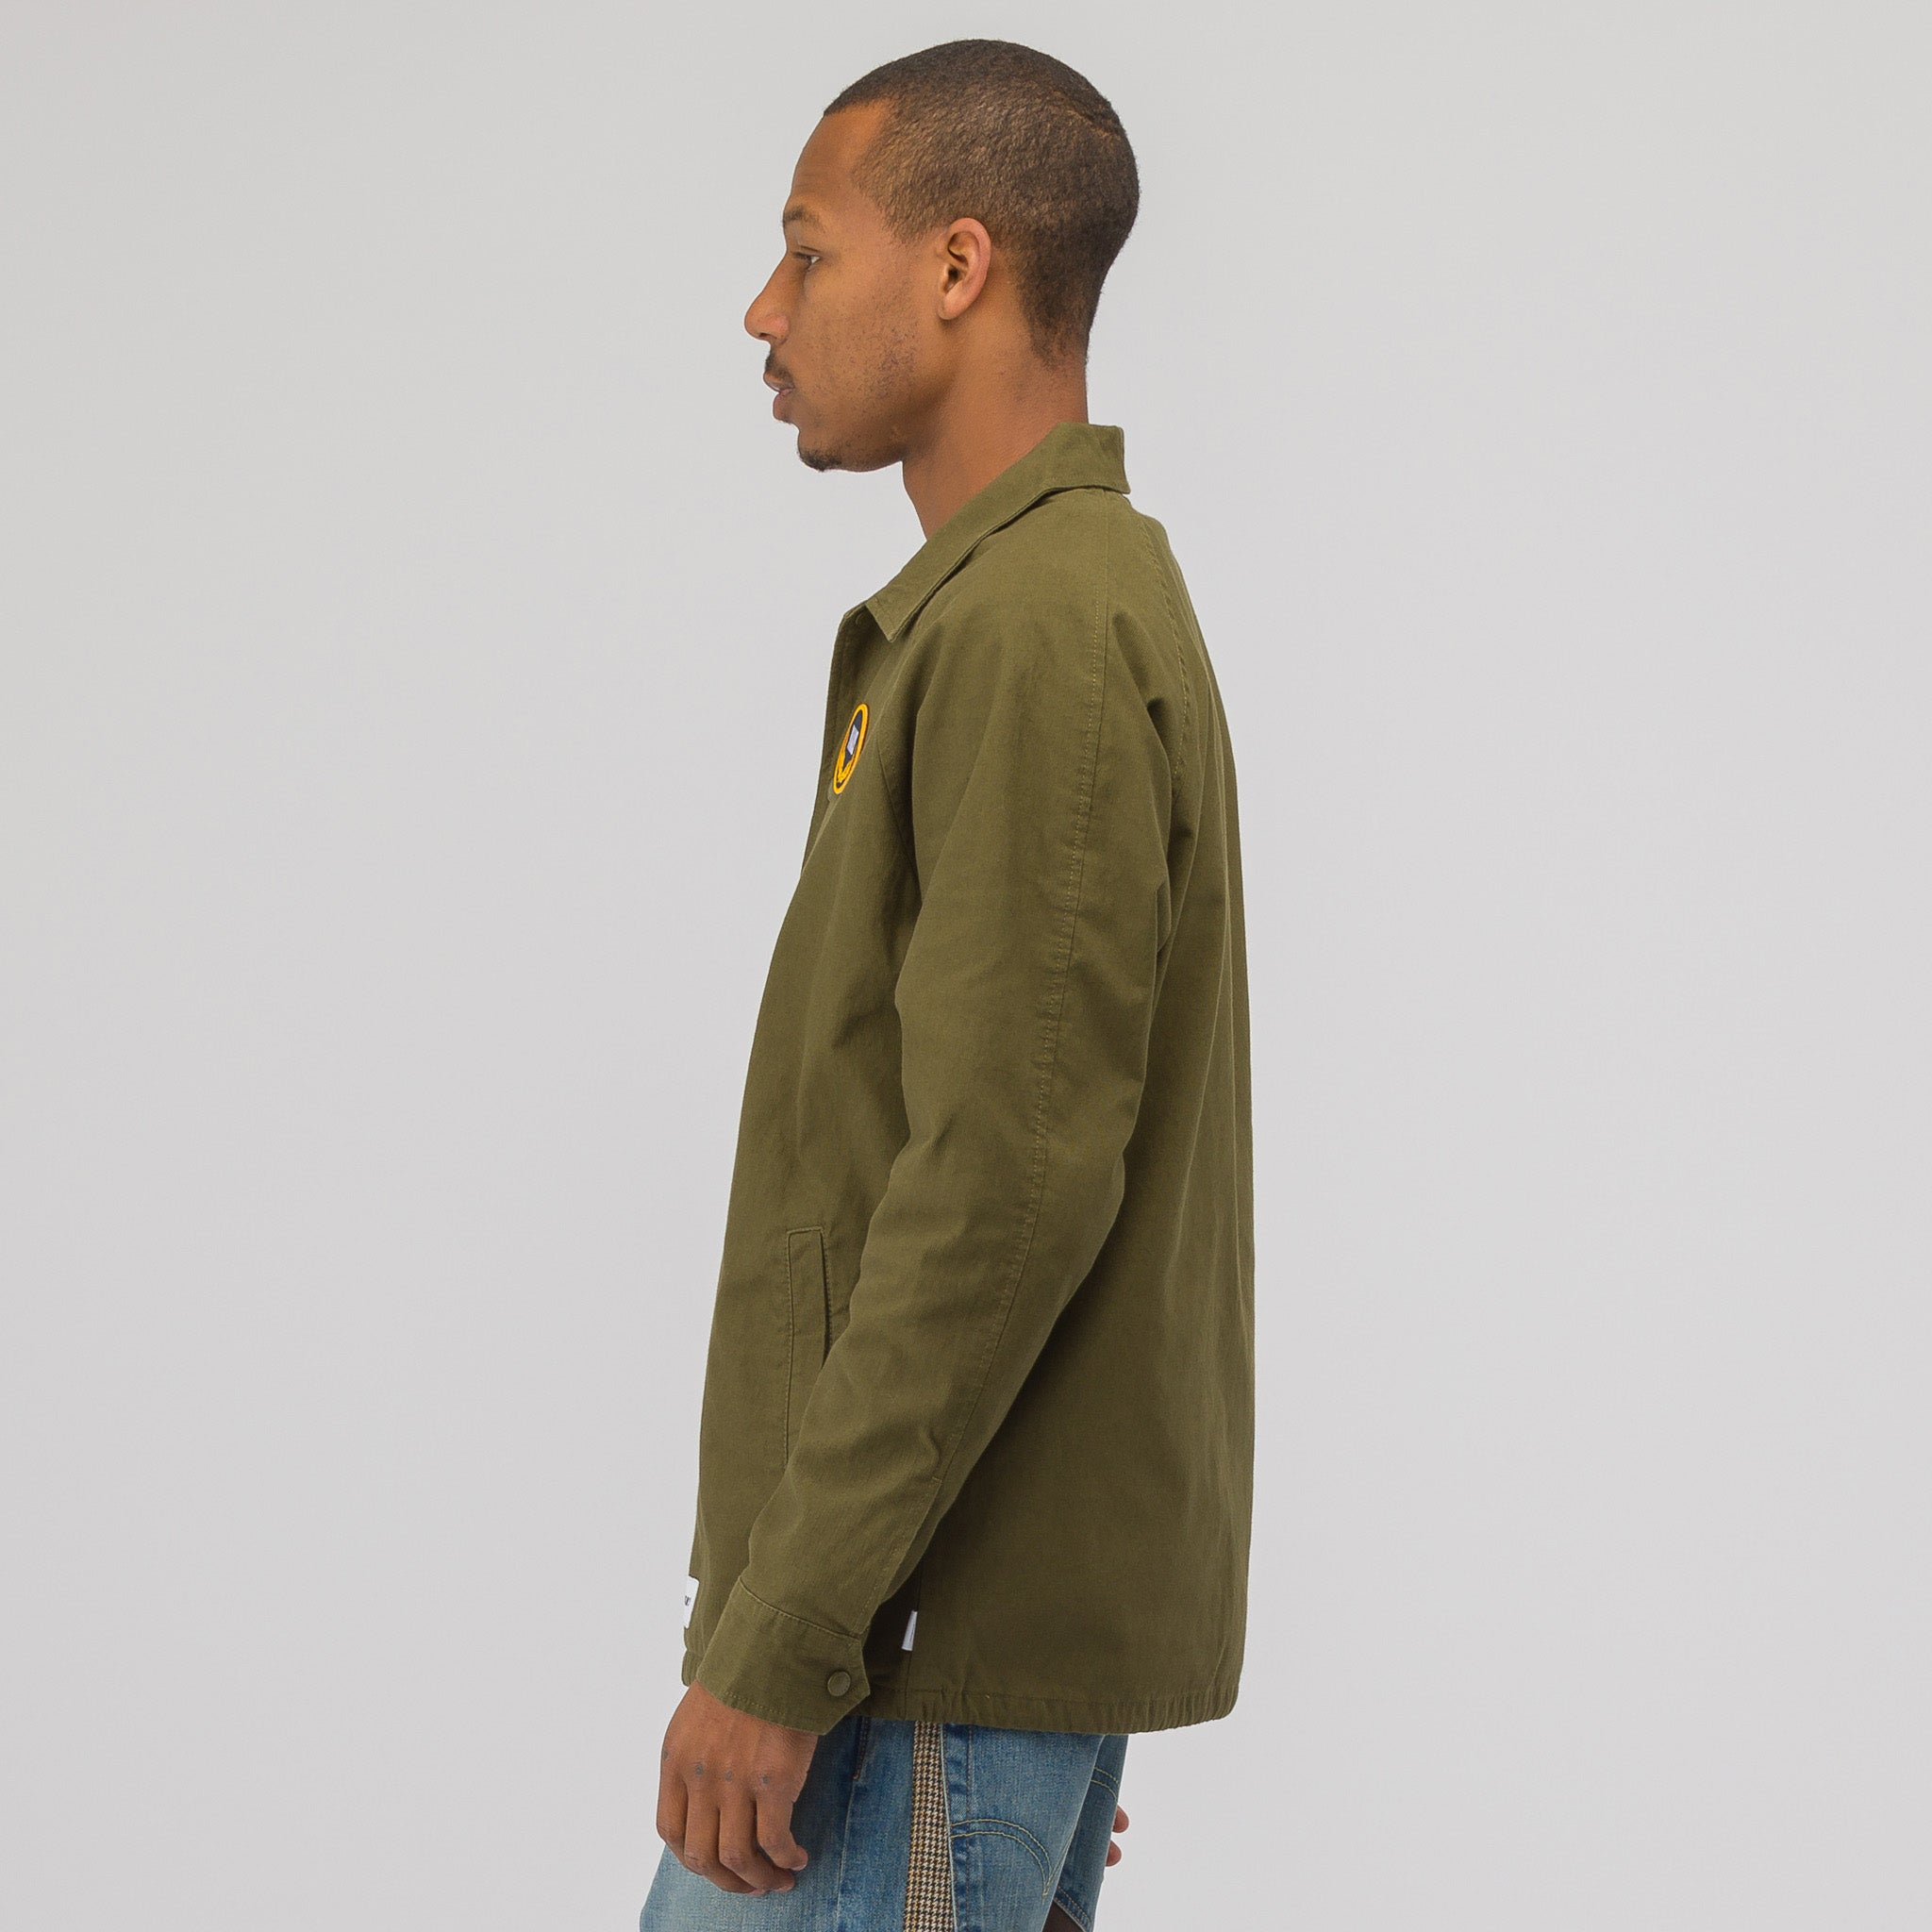 x WTAPS Torrey Coaches Jacket in Olive